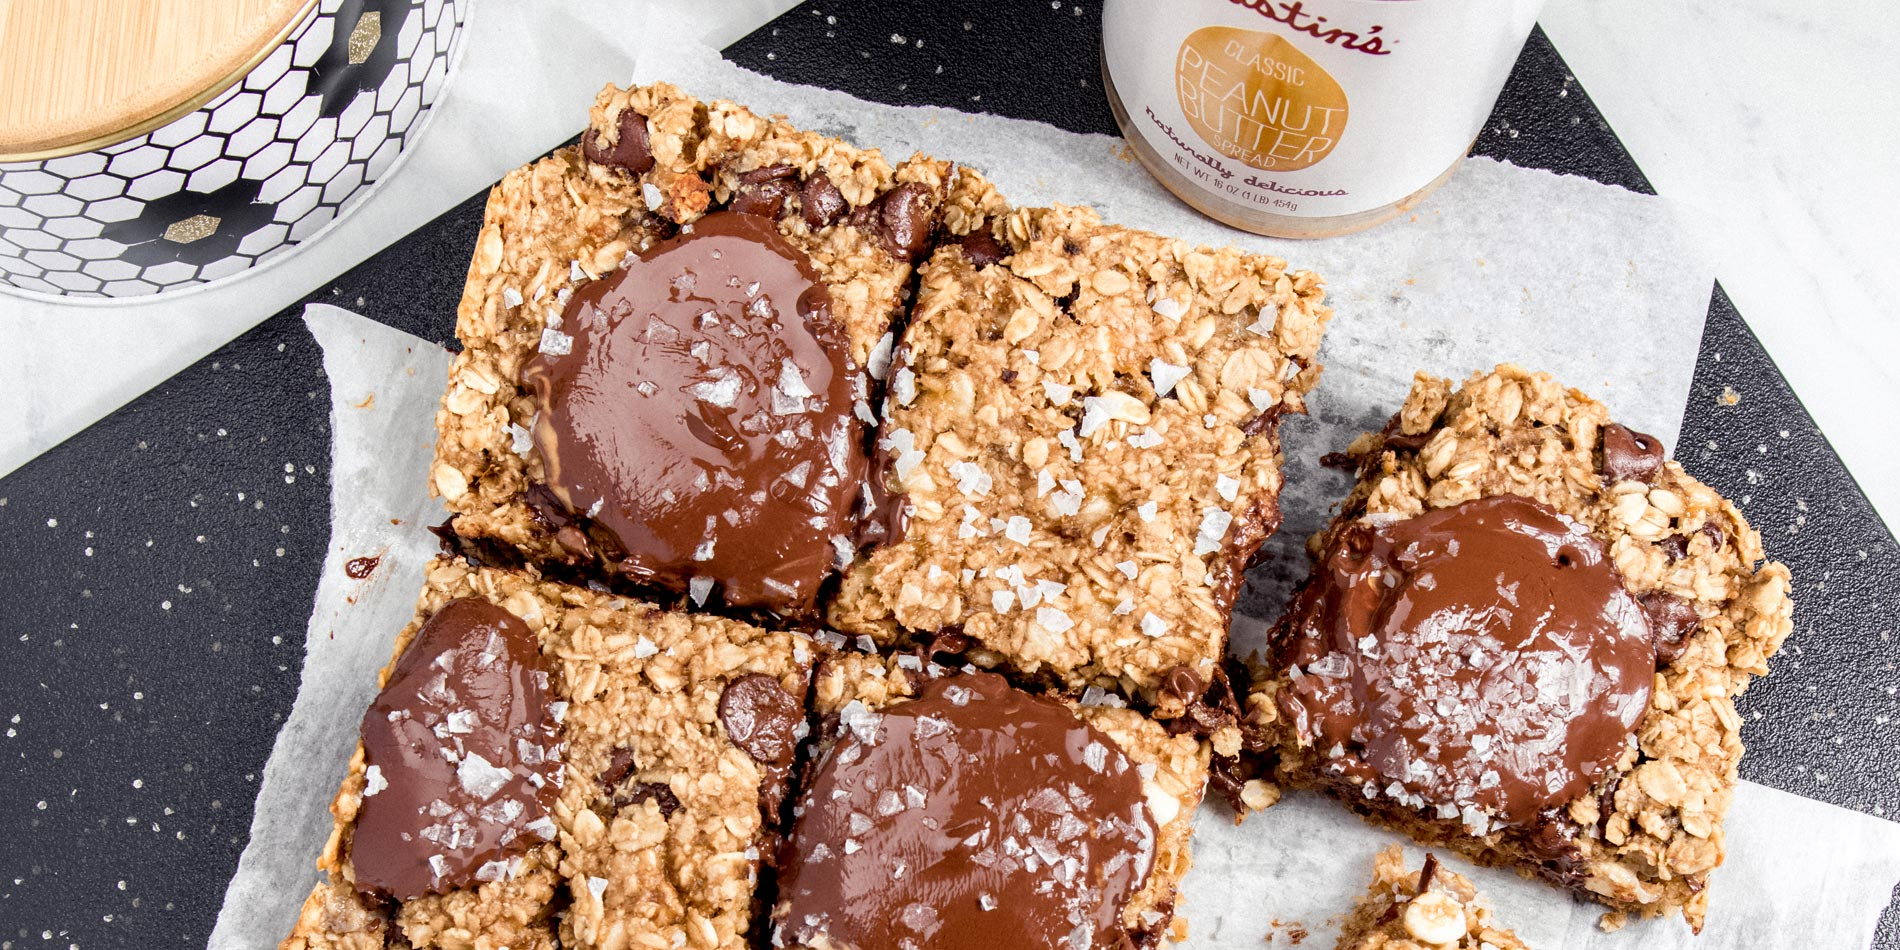 Chocolate Peanut Butter and Banana Oatmeal Cookie Bars on parchment papers on a black rectangular tray on a white background